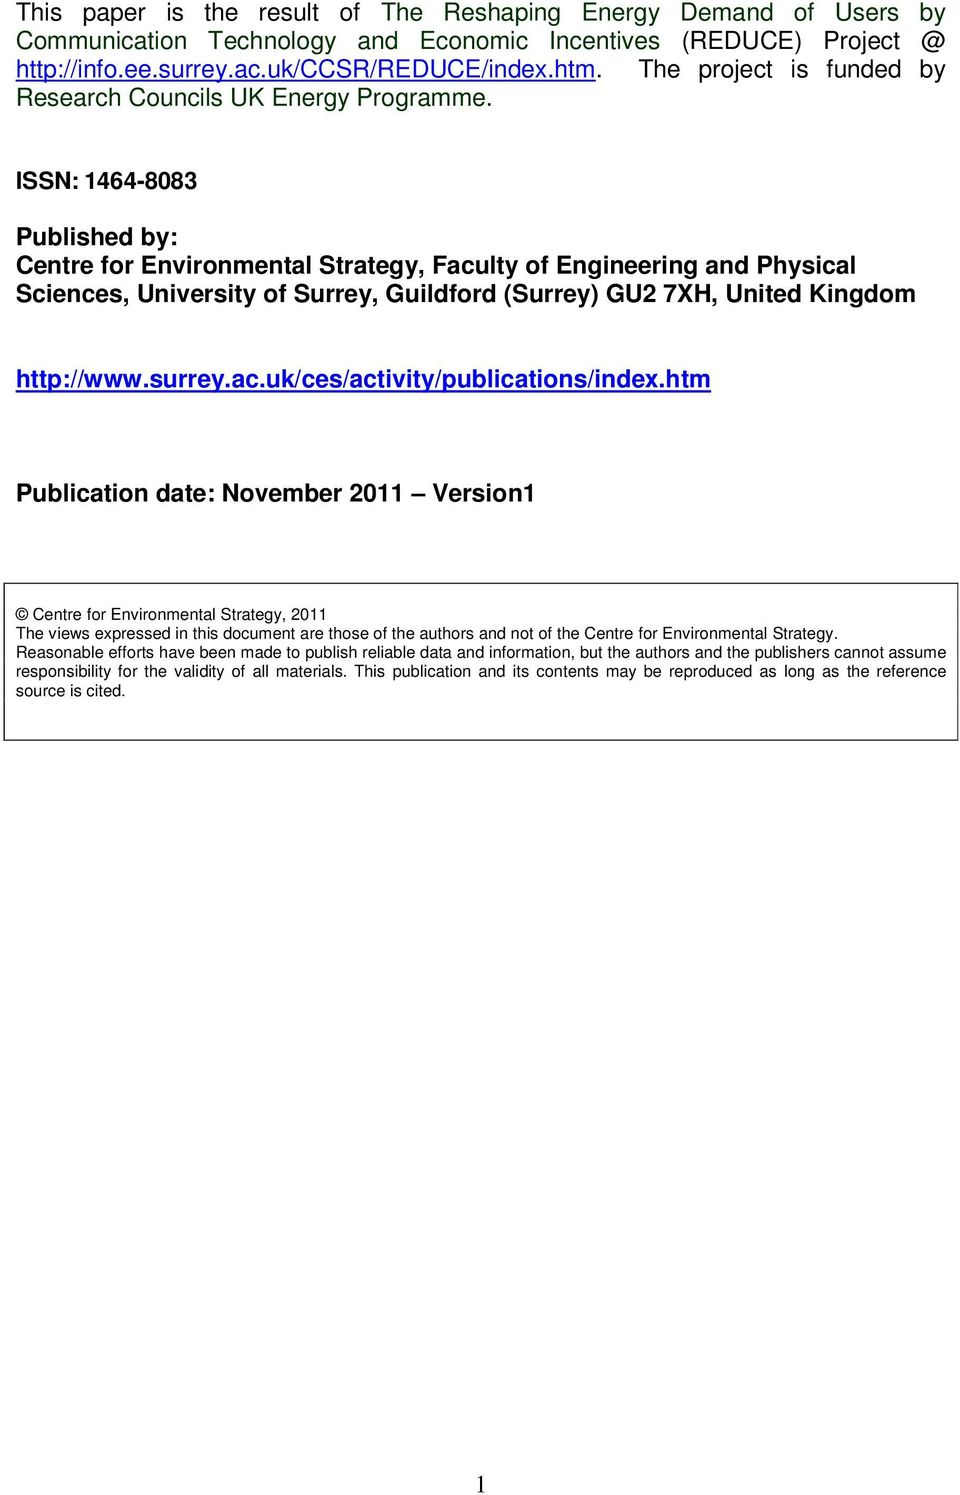 ISSN: 1464-8083 Published by: Centre for Environmental Strategy, Faculty of Engineering and Physical Sciences, University of Surrey, Guildford (Surrey) GU2 7XH, United Kingdom http://www.surrey.ac.uk/ces/activity/publications/index.